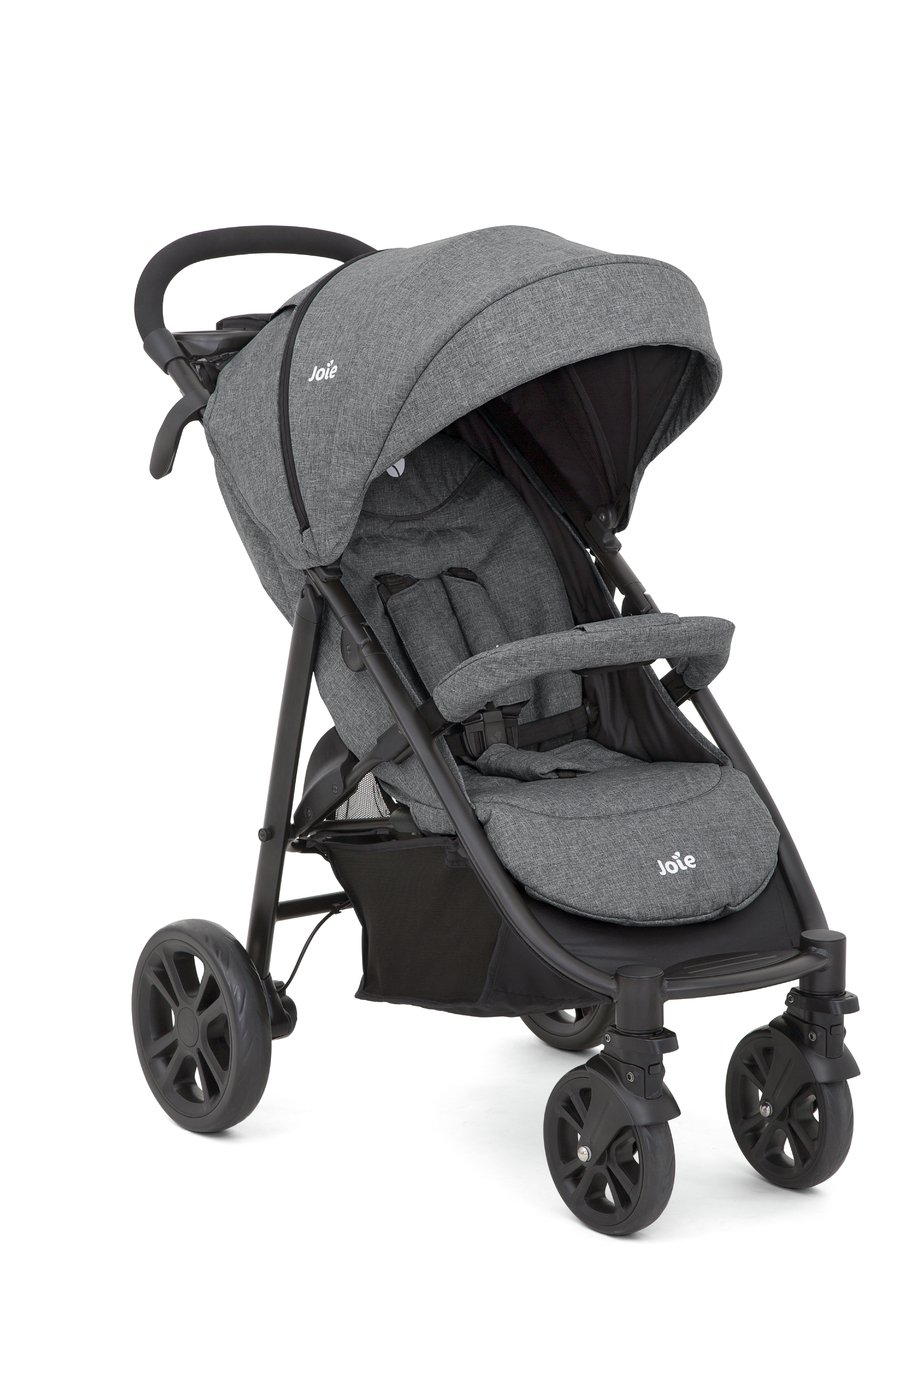 Joie Every Stage Isofix Price Joie Every Stage Group 0123 Car Seat Pumice Price